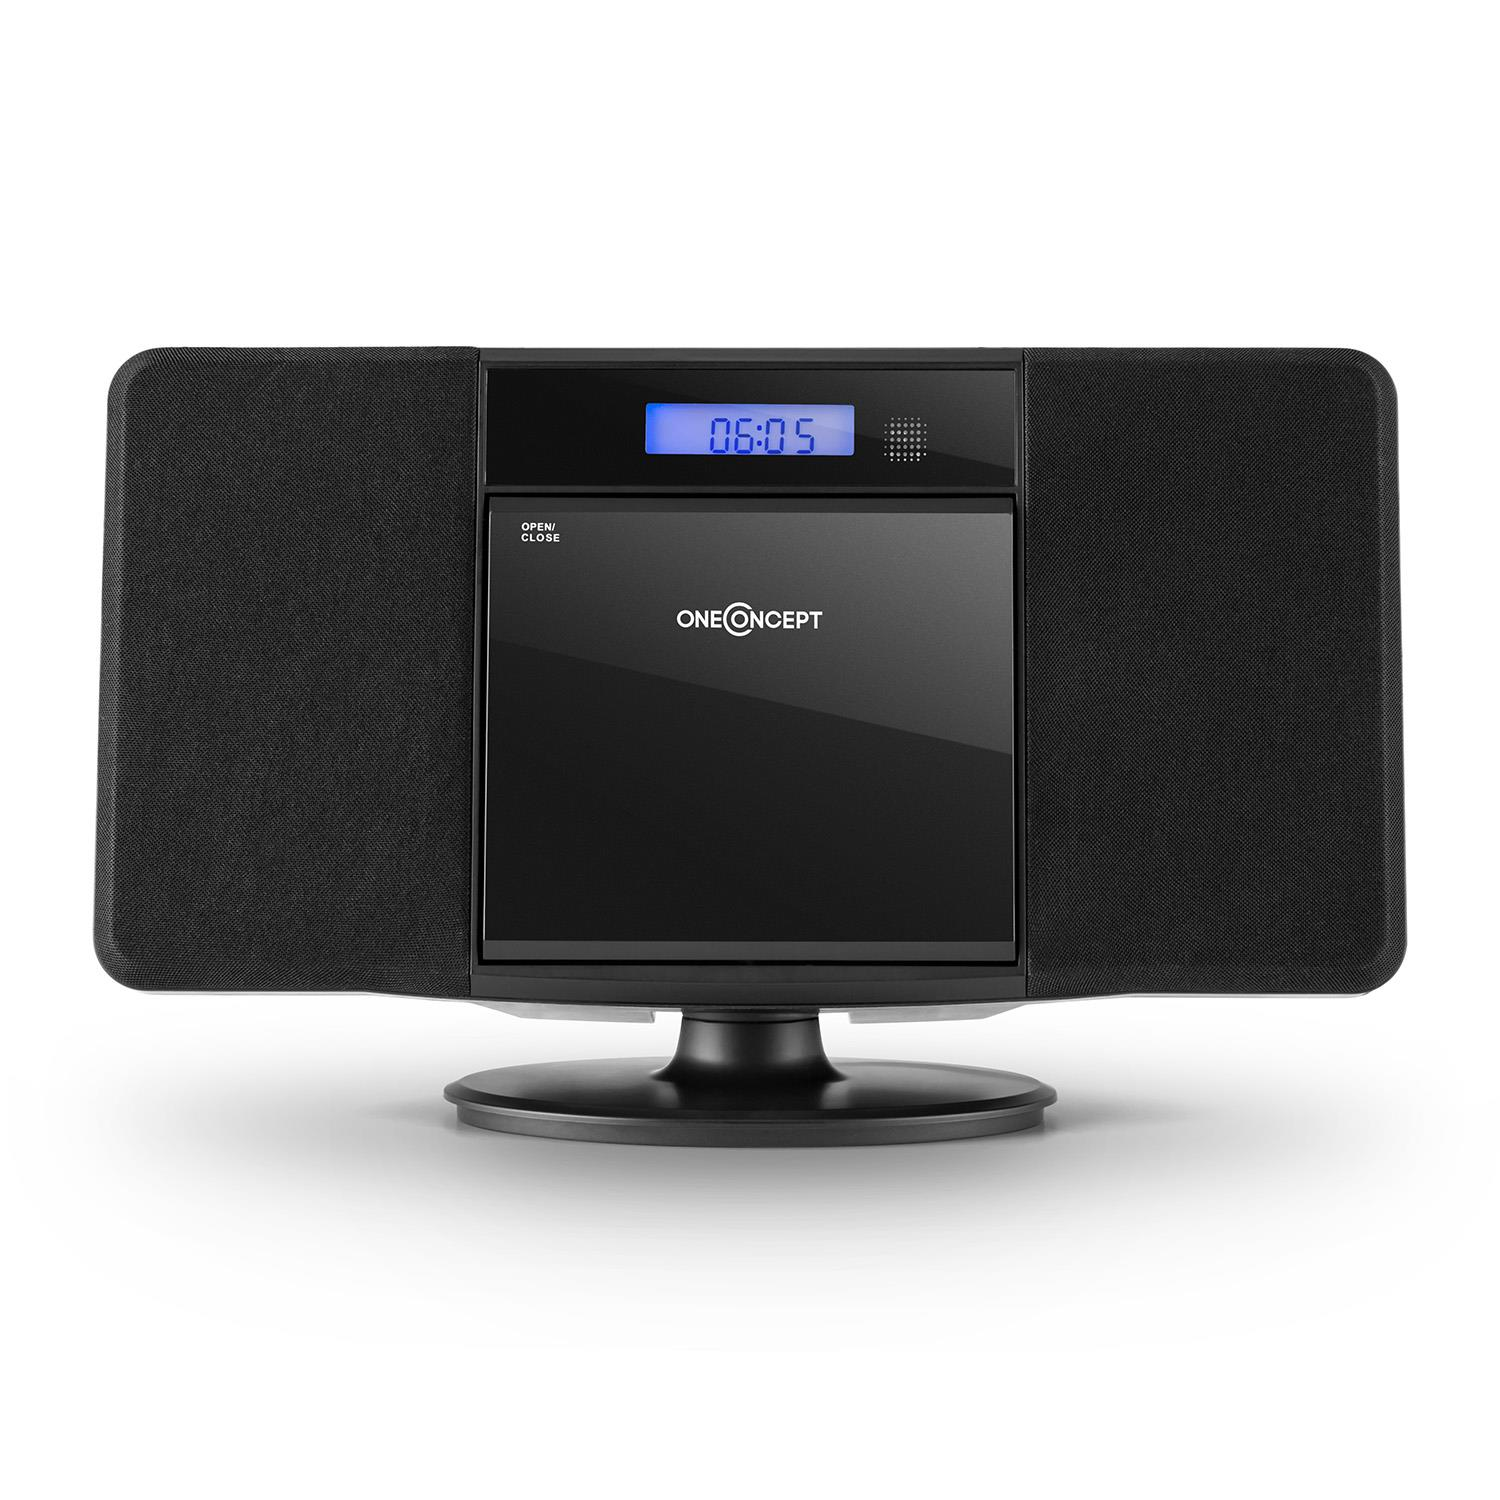 bluetooth stereo system speakers cd player hi fi portable. Black Bedroom Furniture Sets. Home Design Ideas